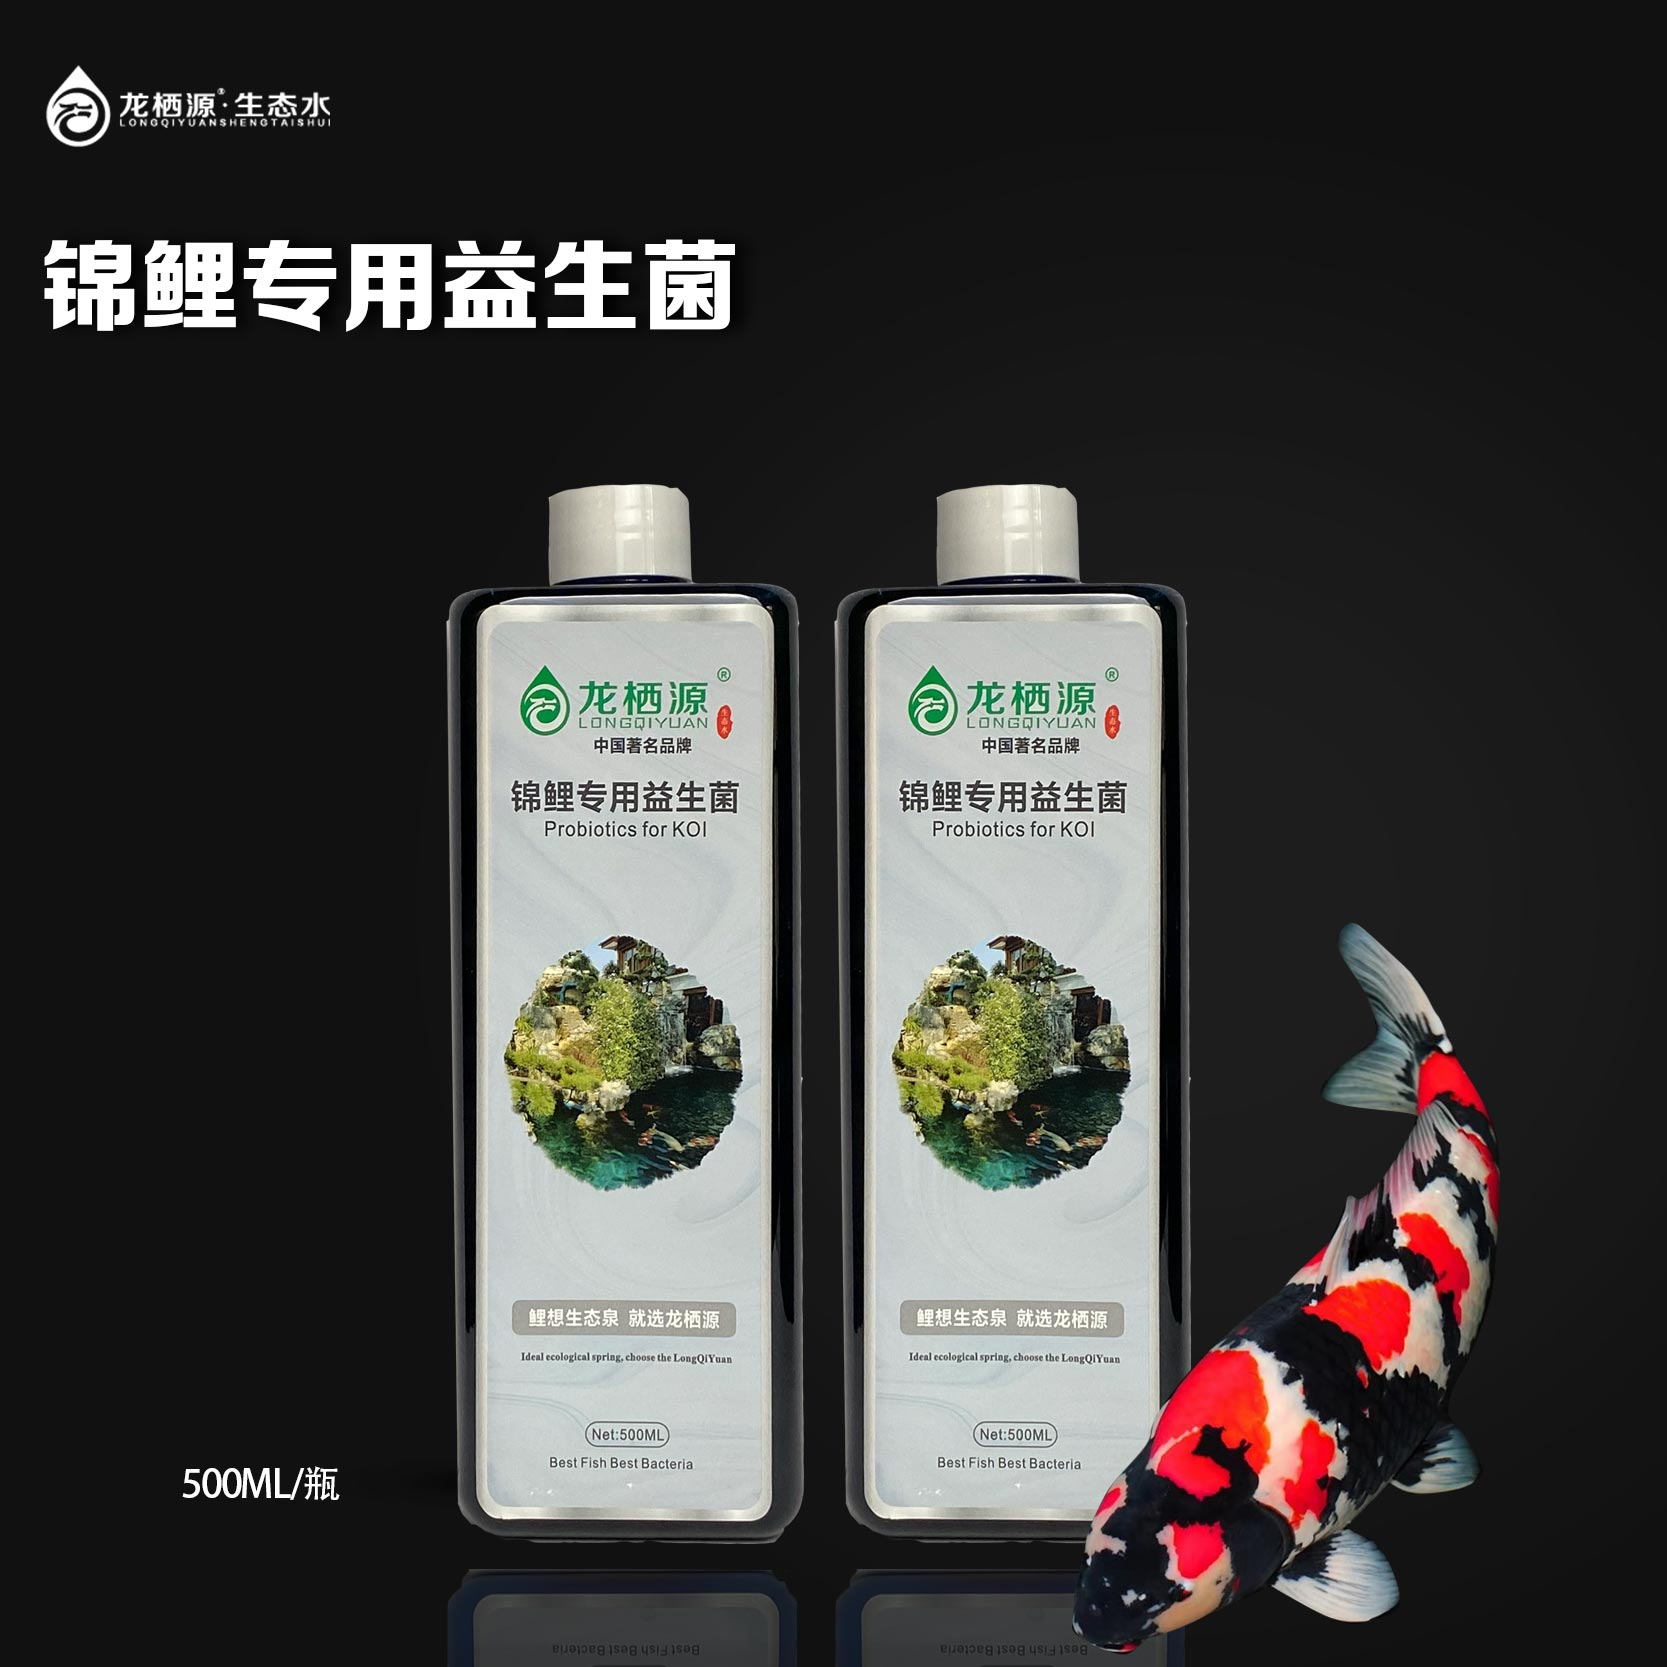 Probiotics for Koi in longqiyuan prevent bacterial enteritis and restore intestinal microecology balance of Koi